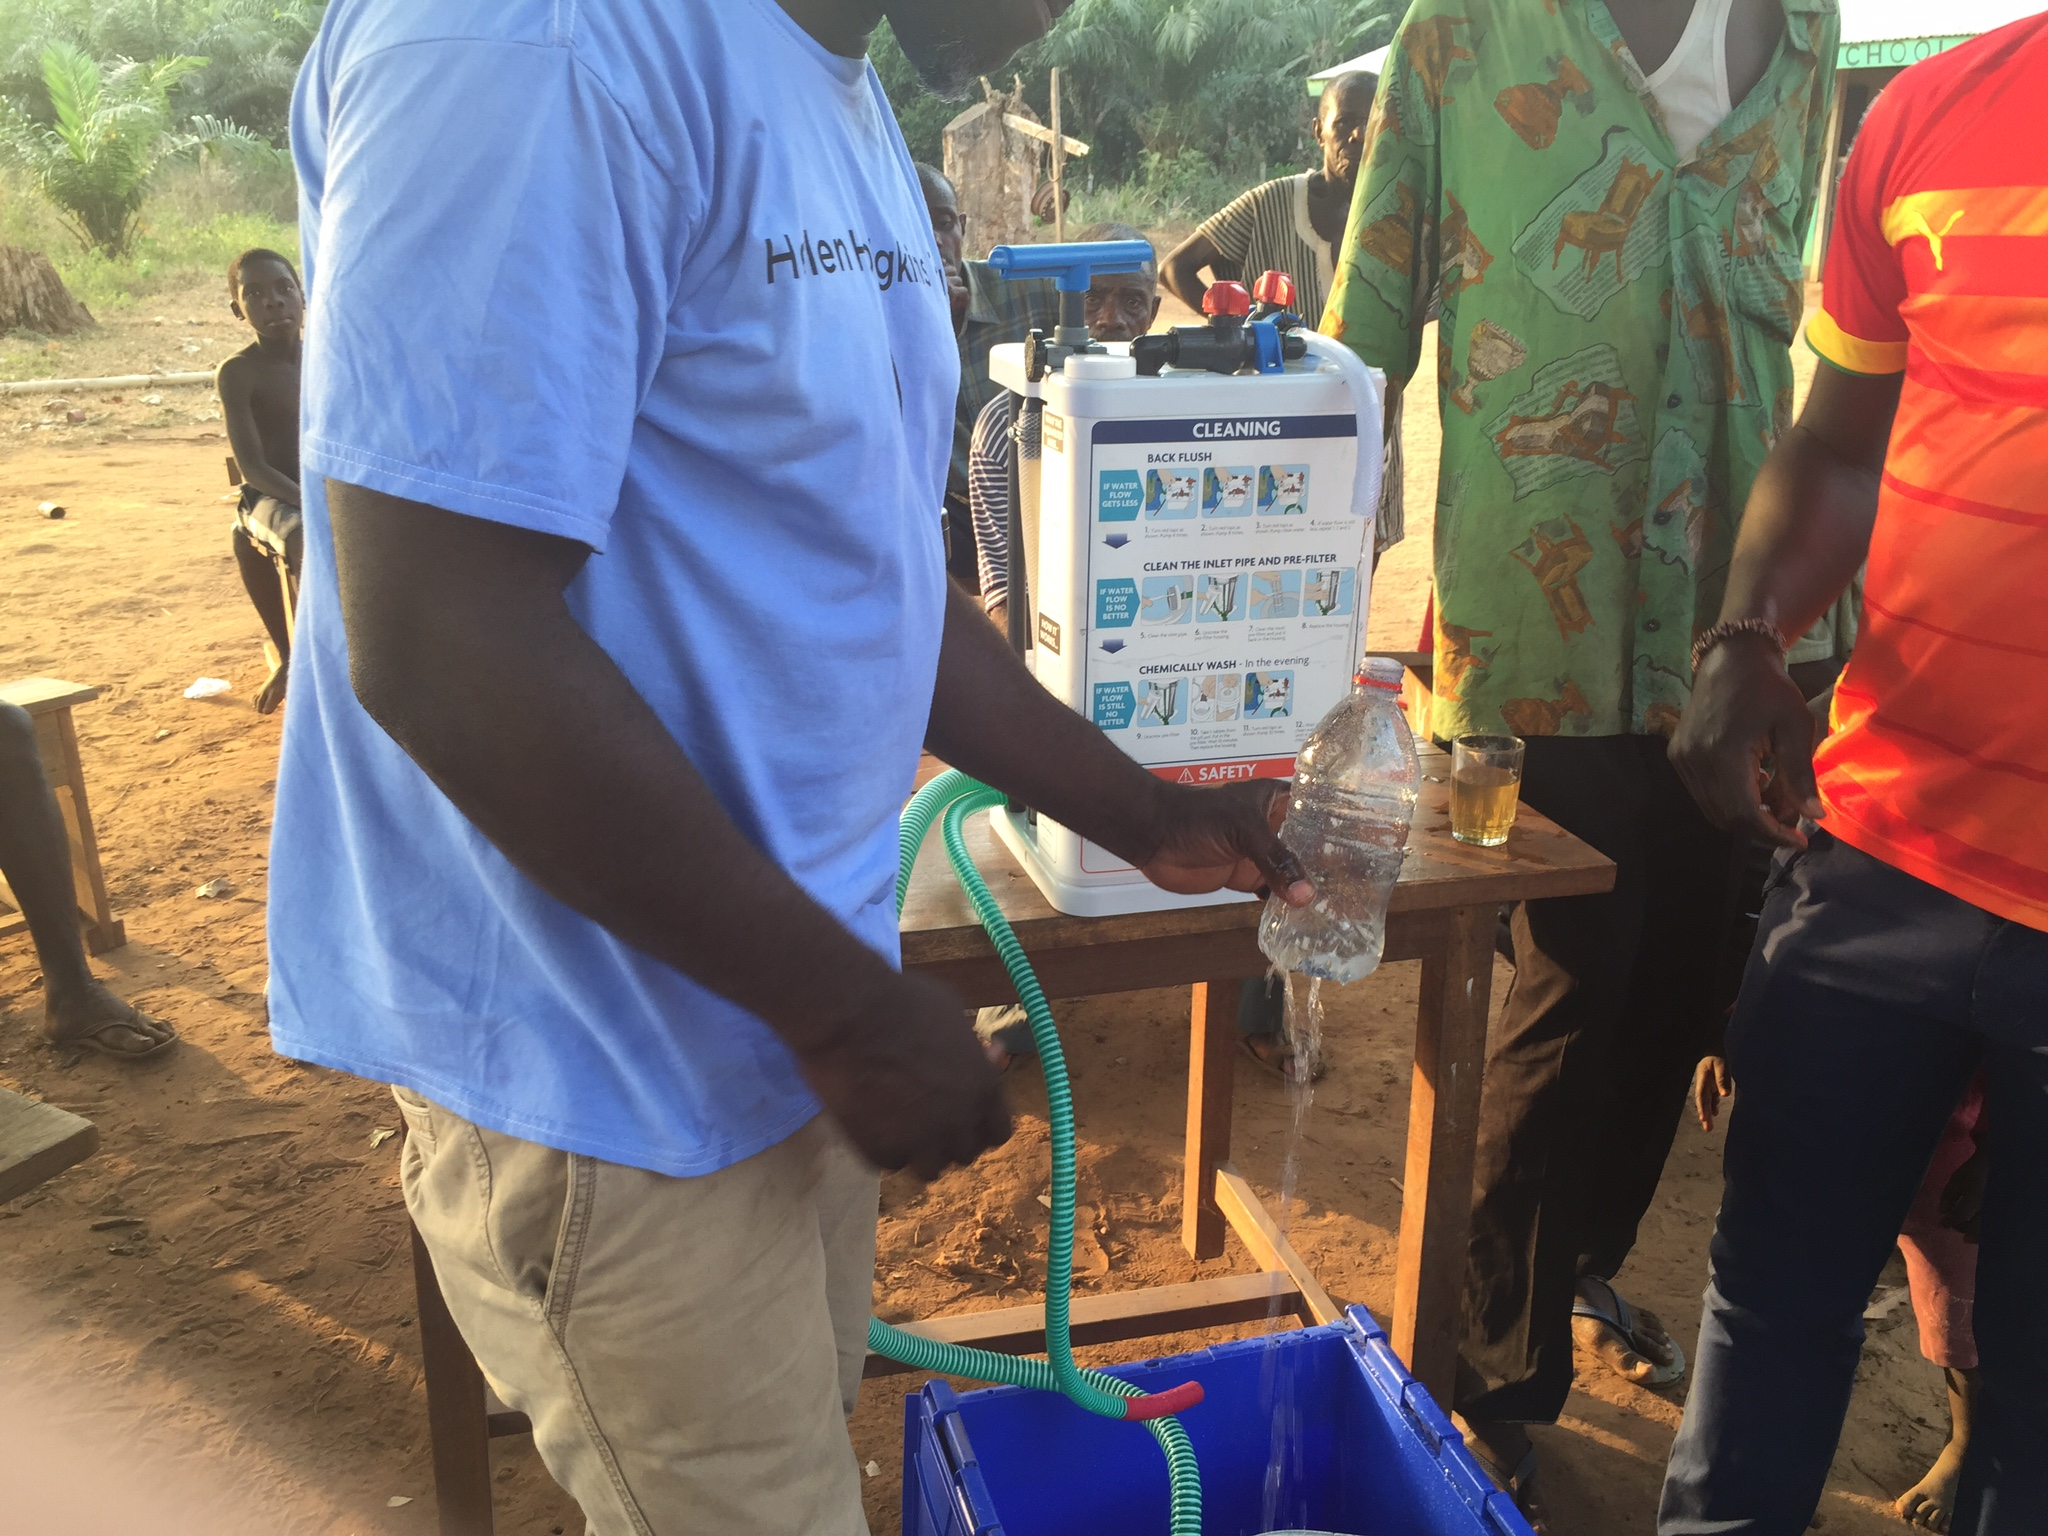 Clean, safe water from the filters